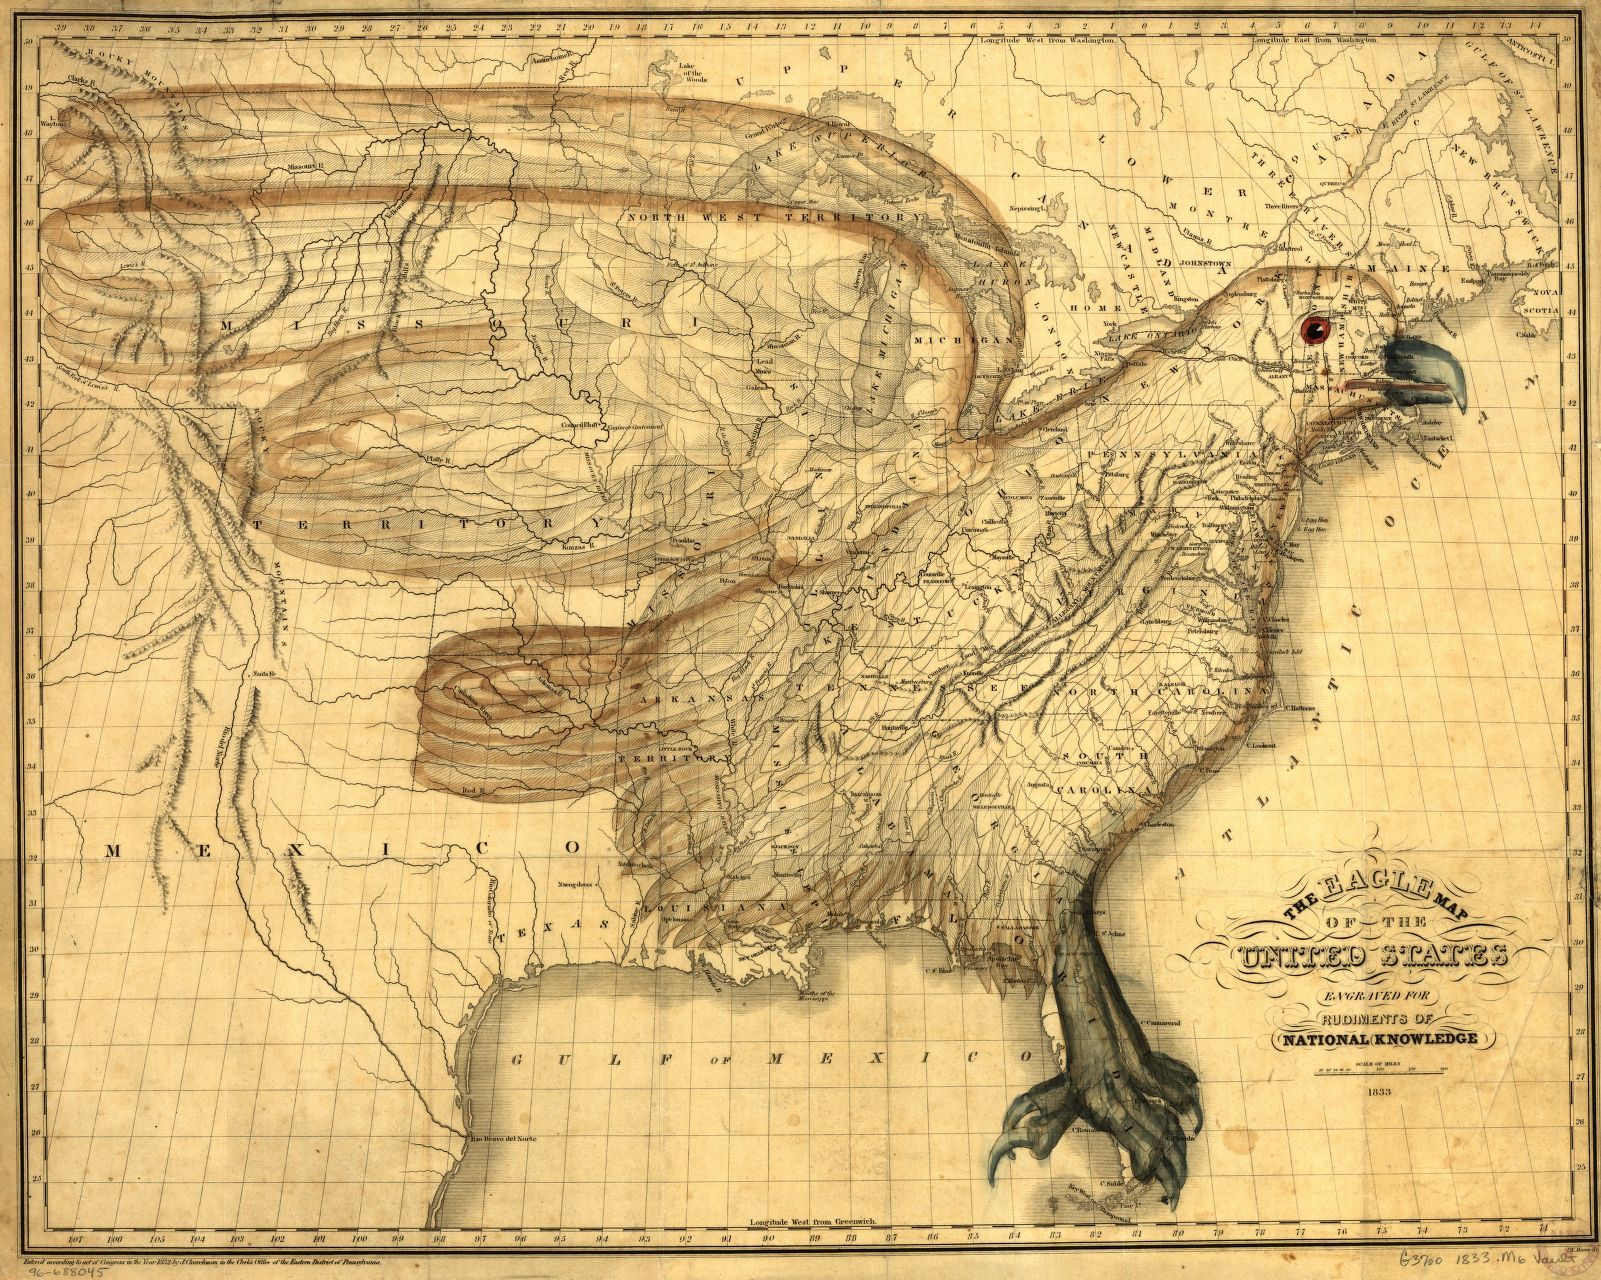 Best Images About Old Maps On Pinterest The Map Galaxies And - Old maps of america